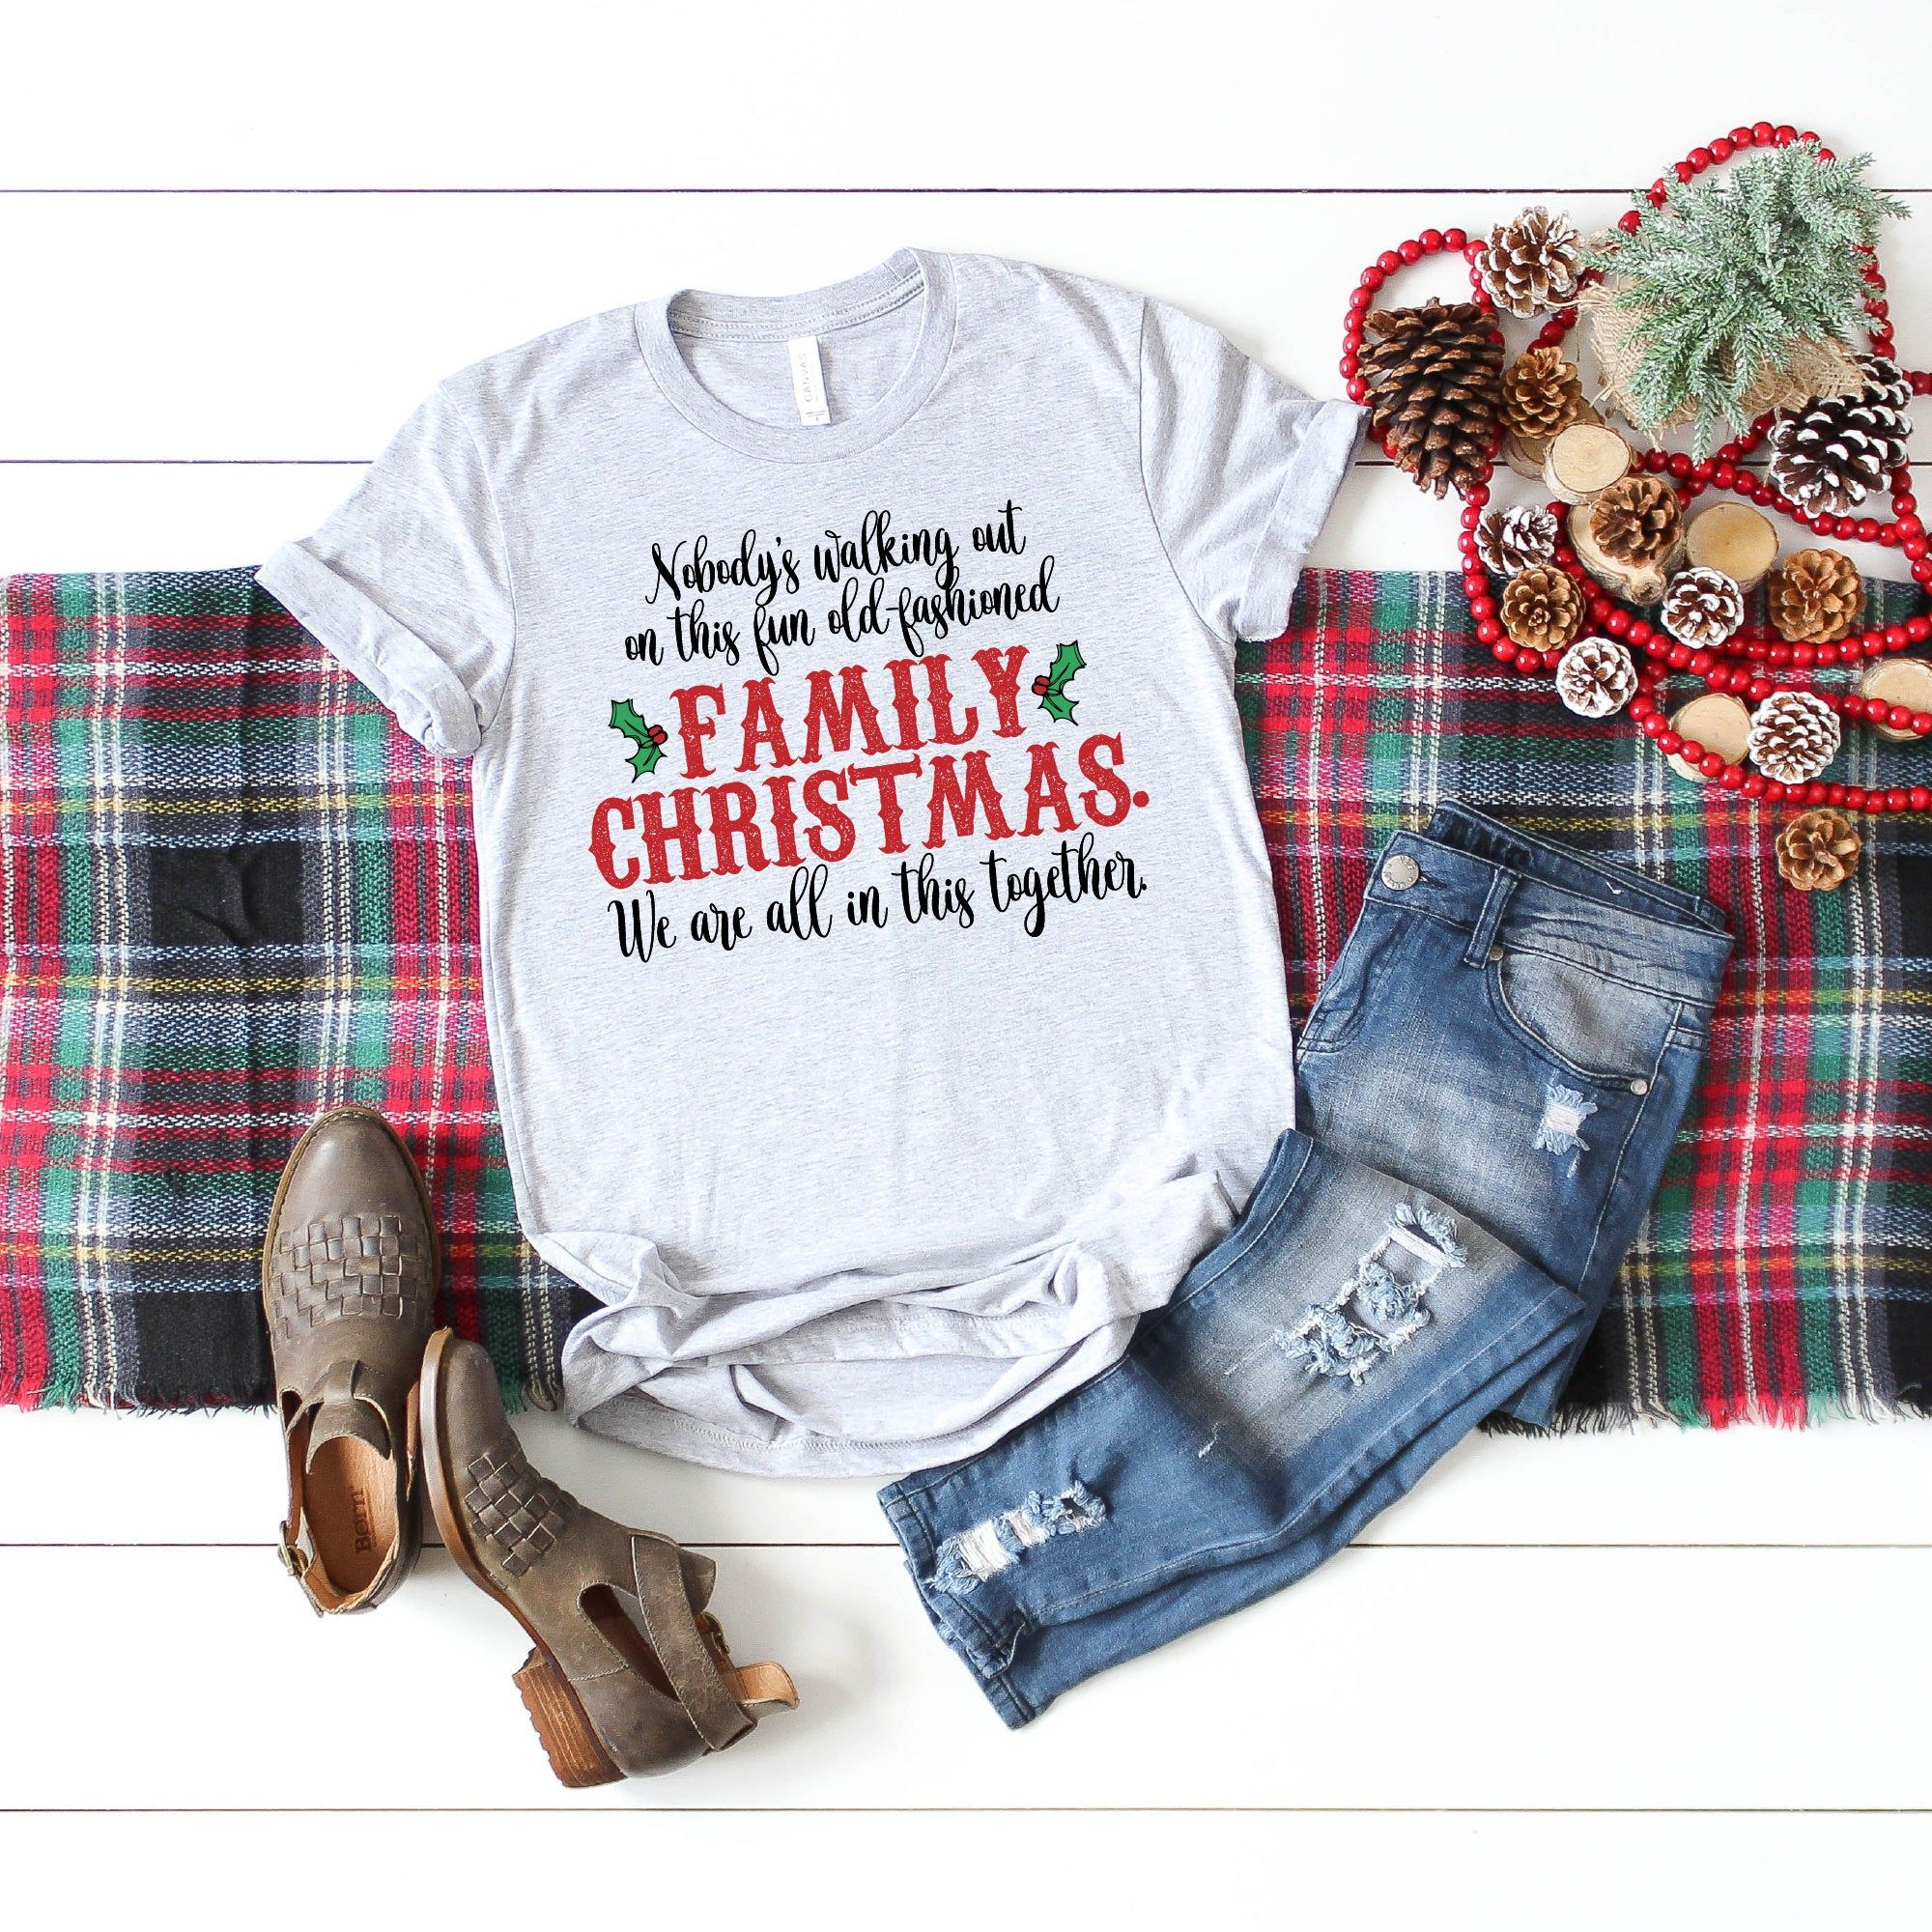 Christmas Vacation Shirts You Serious Clark Tee Funny